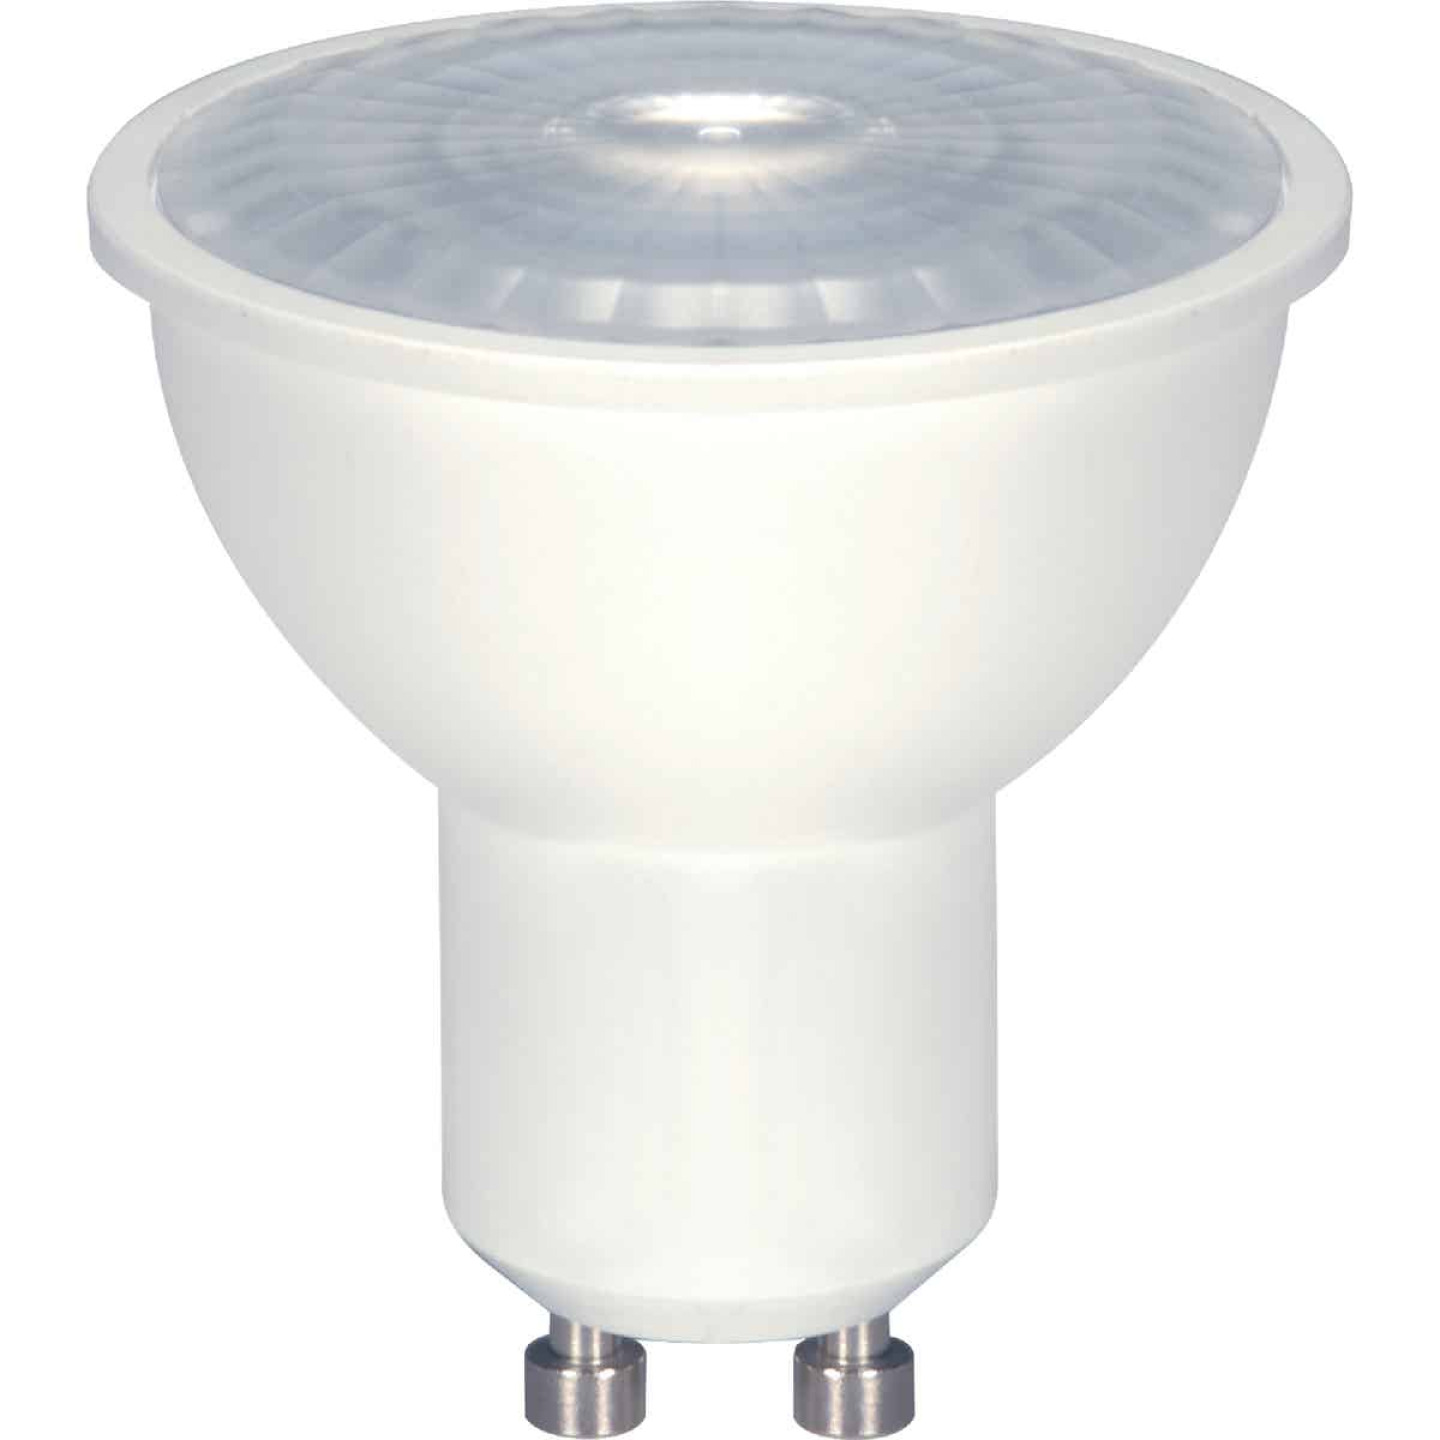 Satco 50W Equivalent Warm White MR16 GU10 Dimmable LED Floodlight Light Bulb Image 1